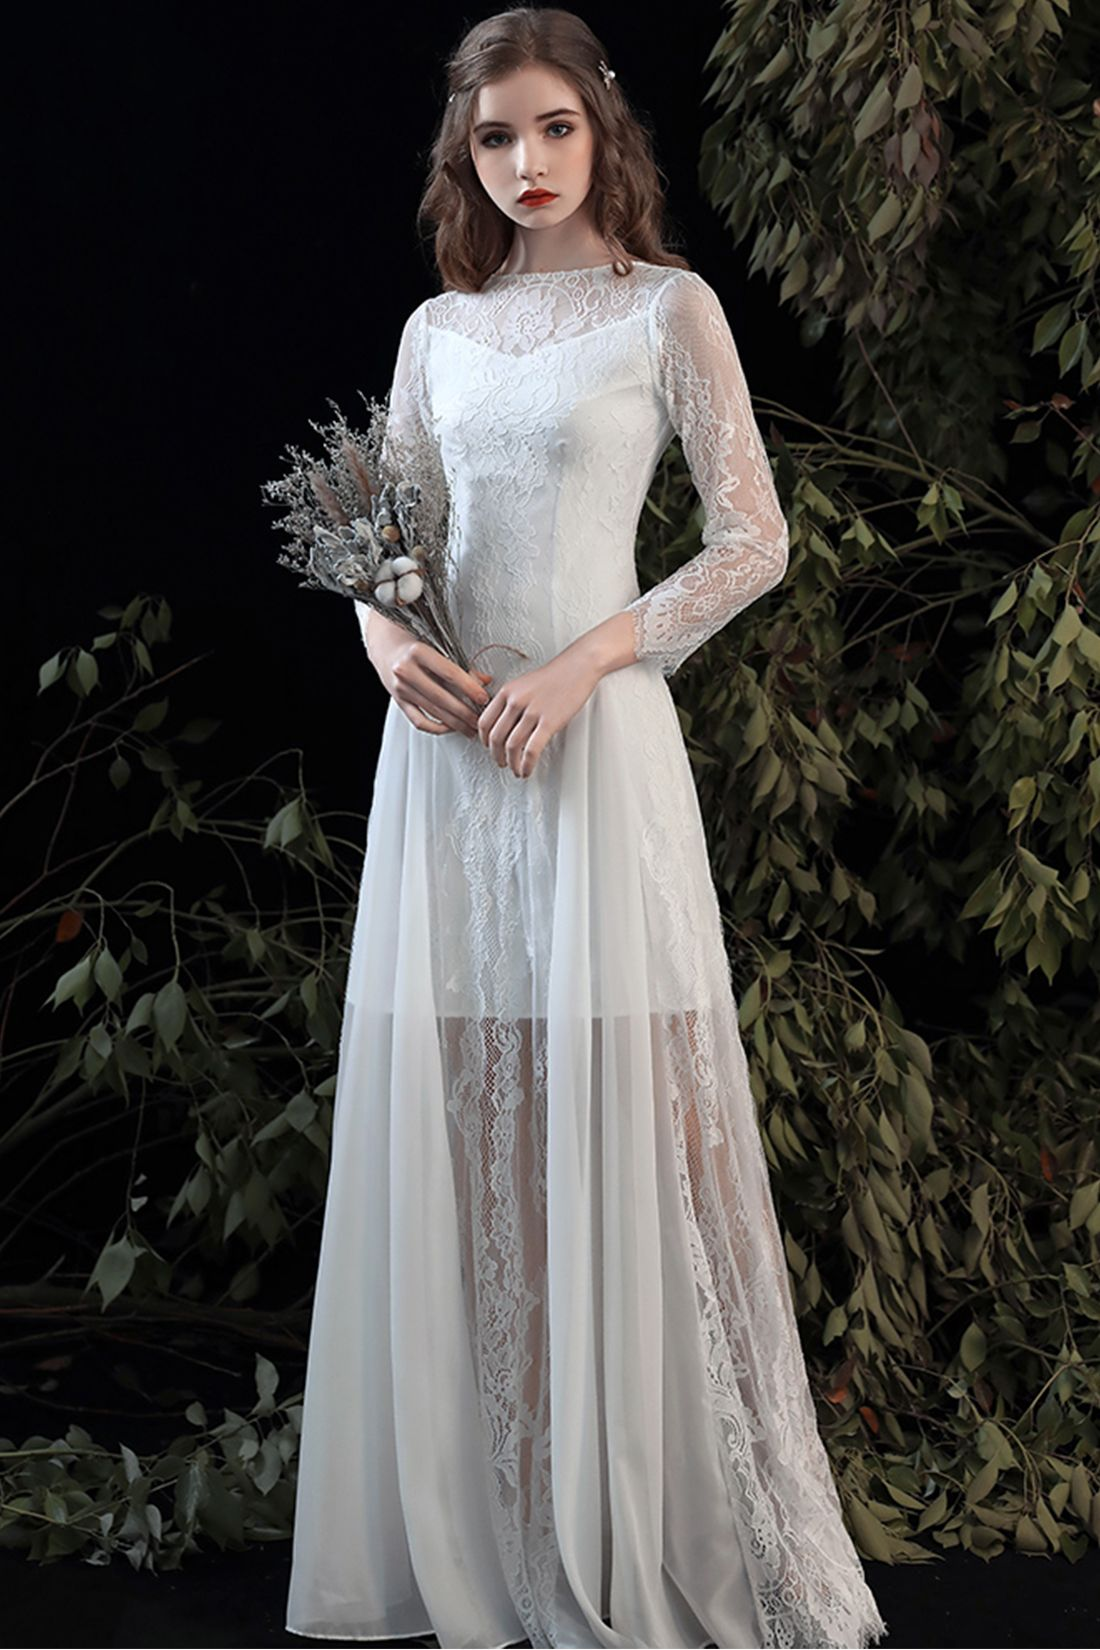 Illusion Neck Long Sleeve Lace Casual Wedding Dress with